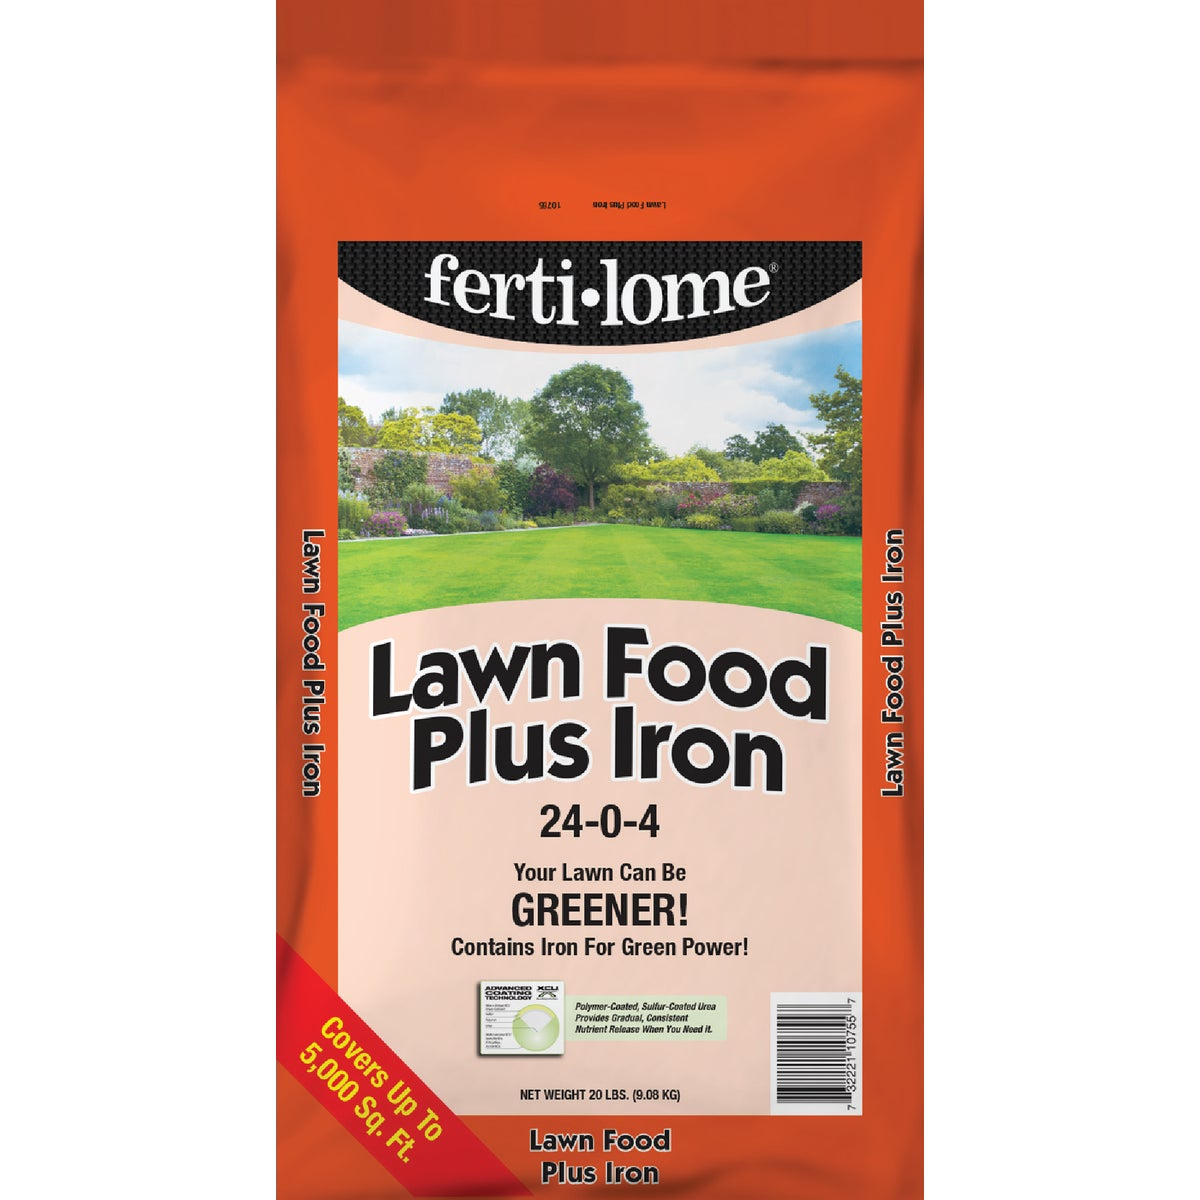 20LB LAWN FOOD PLUS IRON - 10755 by Vpg Fertilome